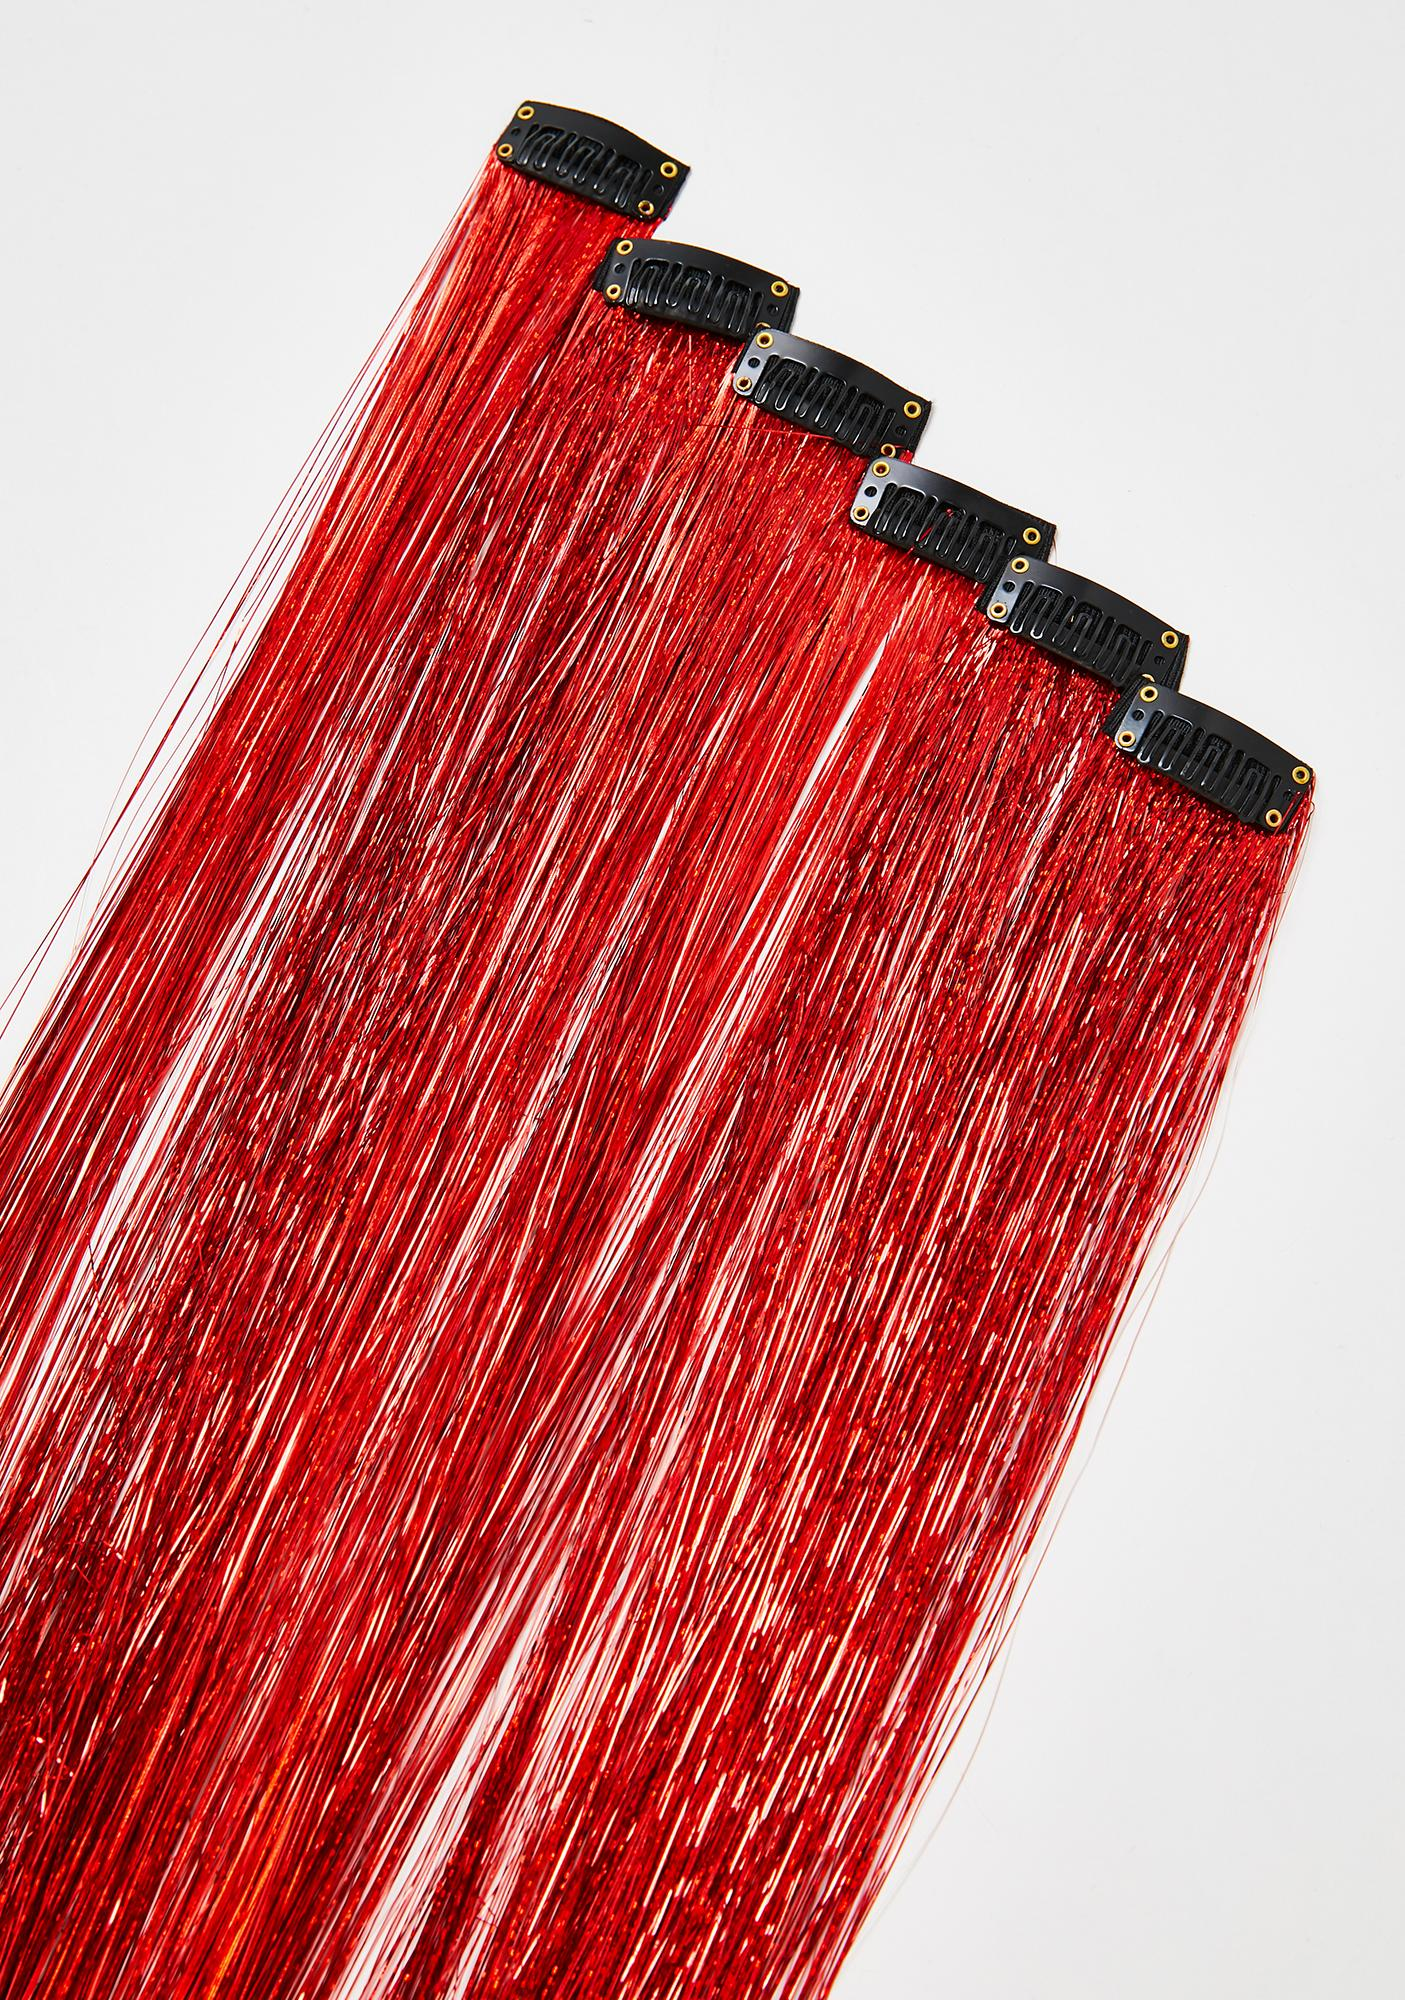 SHRINE Red Tinsel Hair Extensions